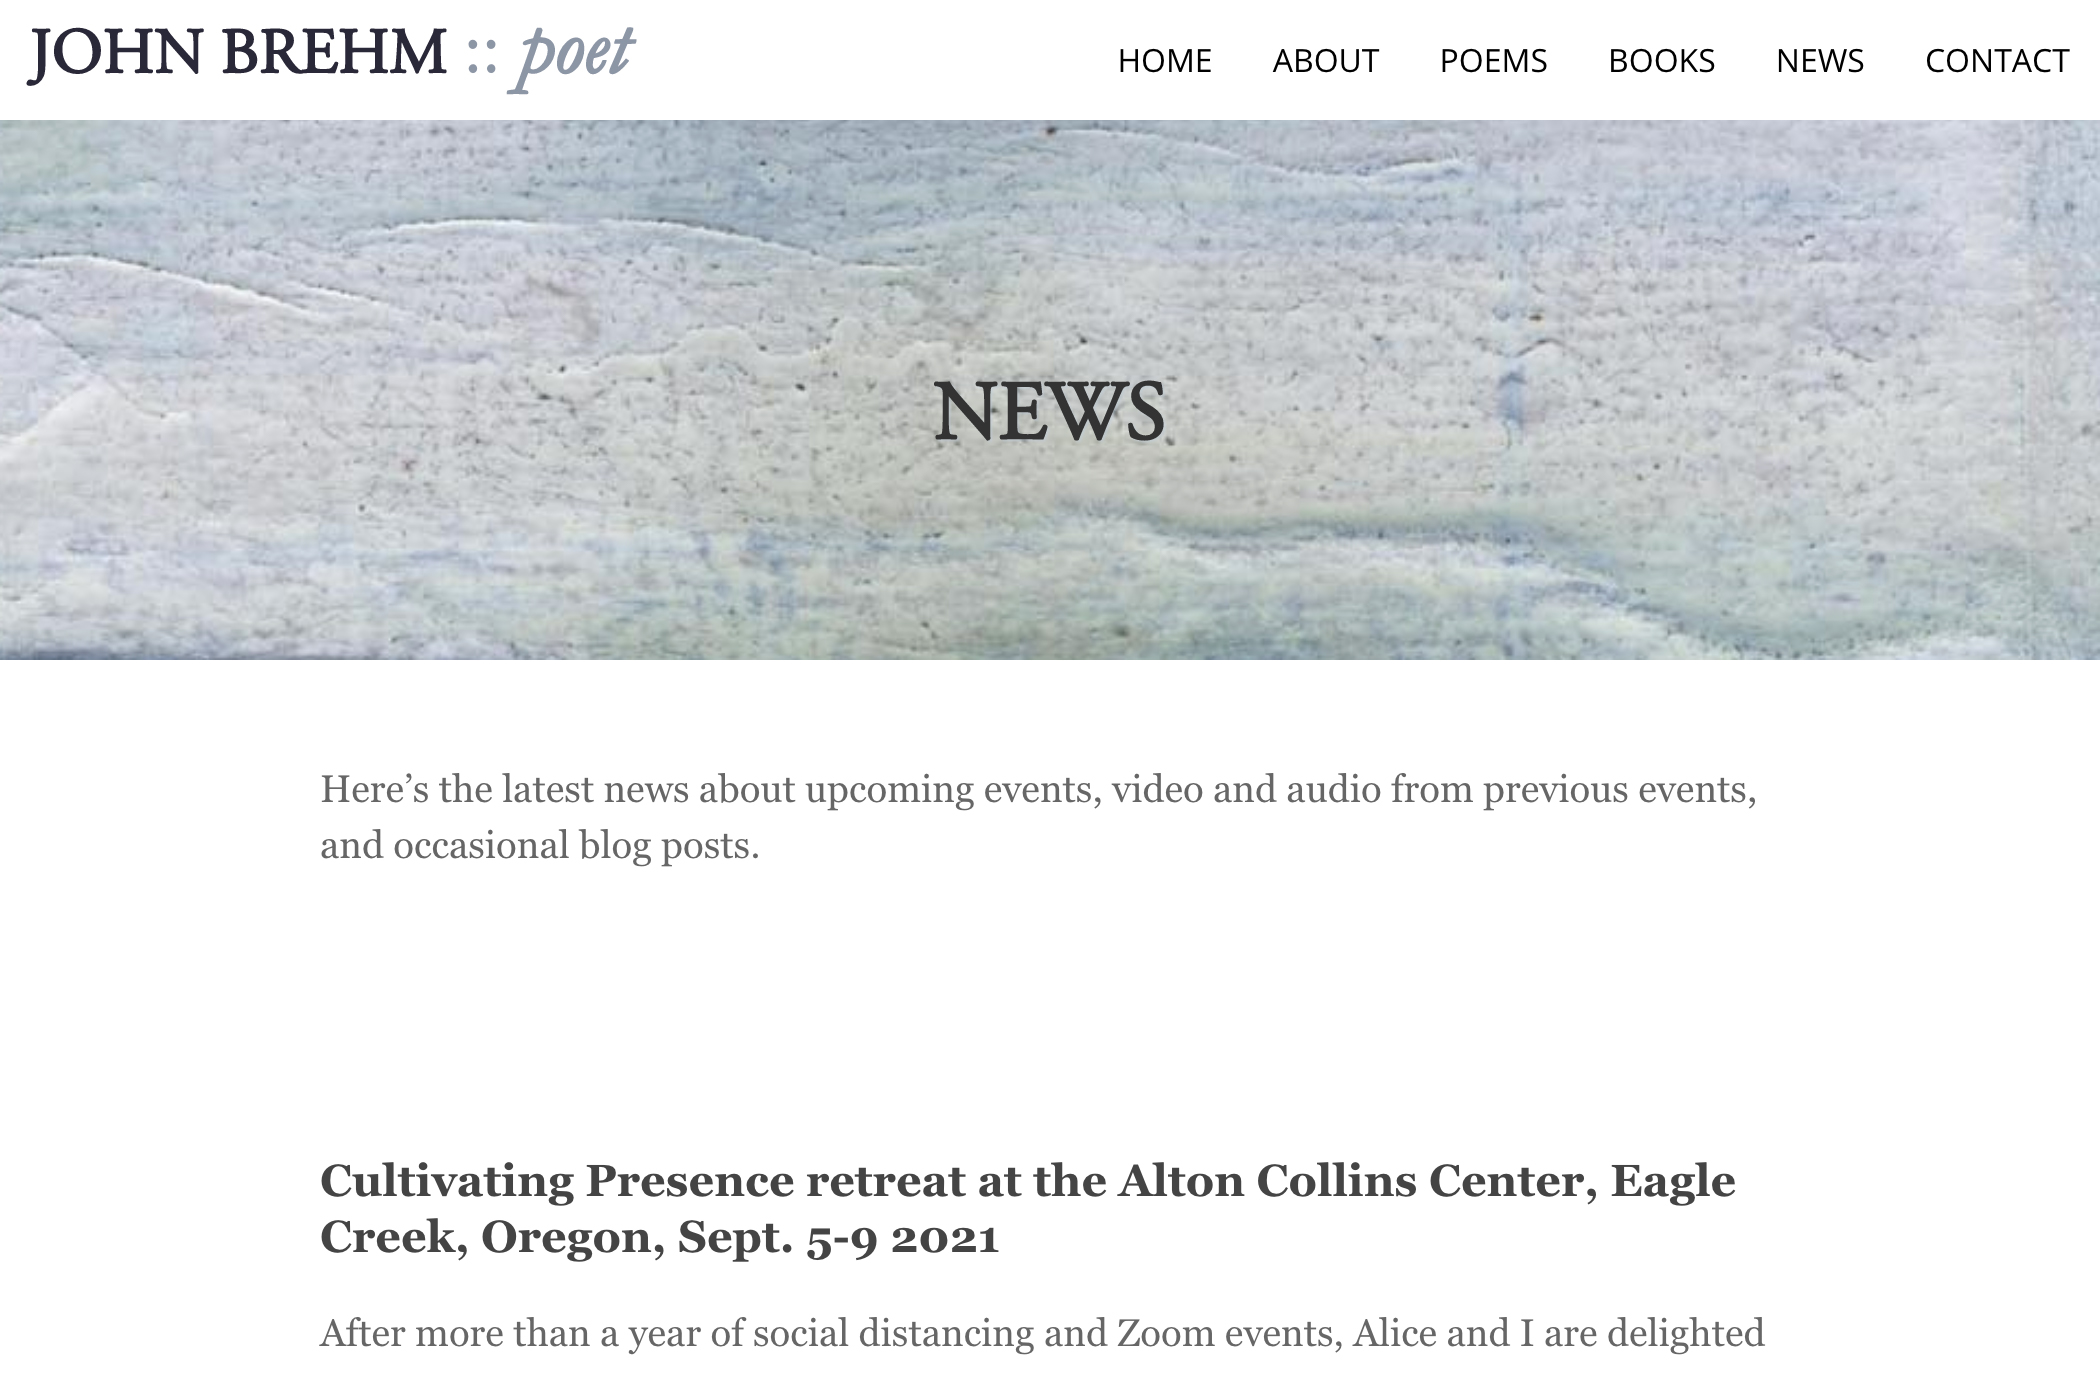 website design for a writer - news page for a poet